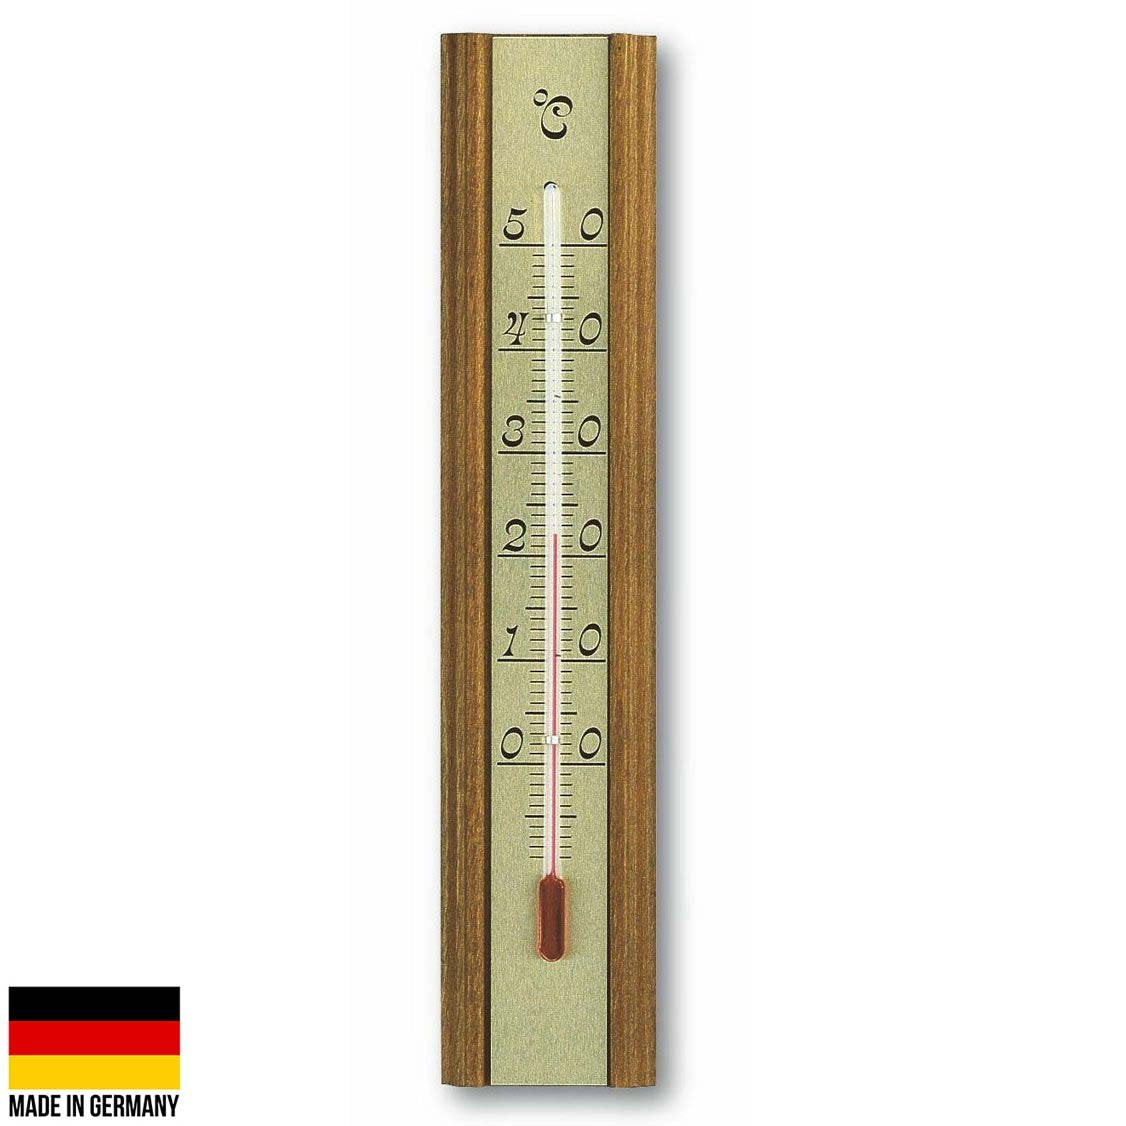 TFA Germany Mccoy Solid Oak Wood Analogue Thermometer 20cm 12.1016 1